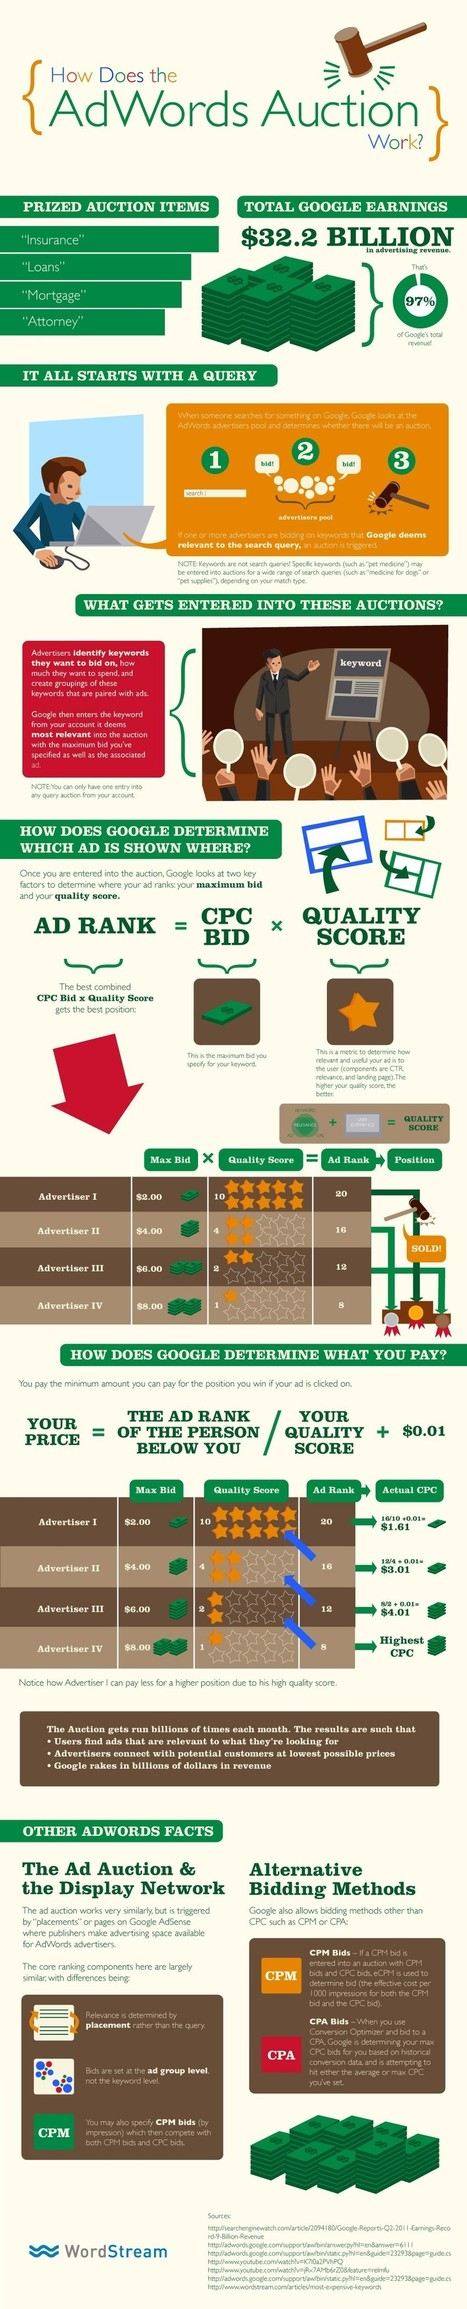 Google Billion Dollar Adword Auction Secrets Revealed | Infographics | CrowdSourcing InfoGraphics | Scoop.it